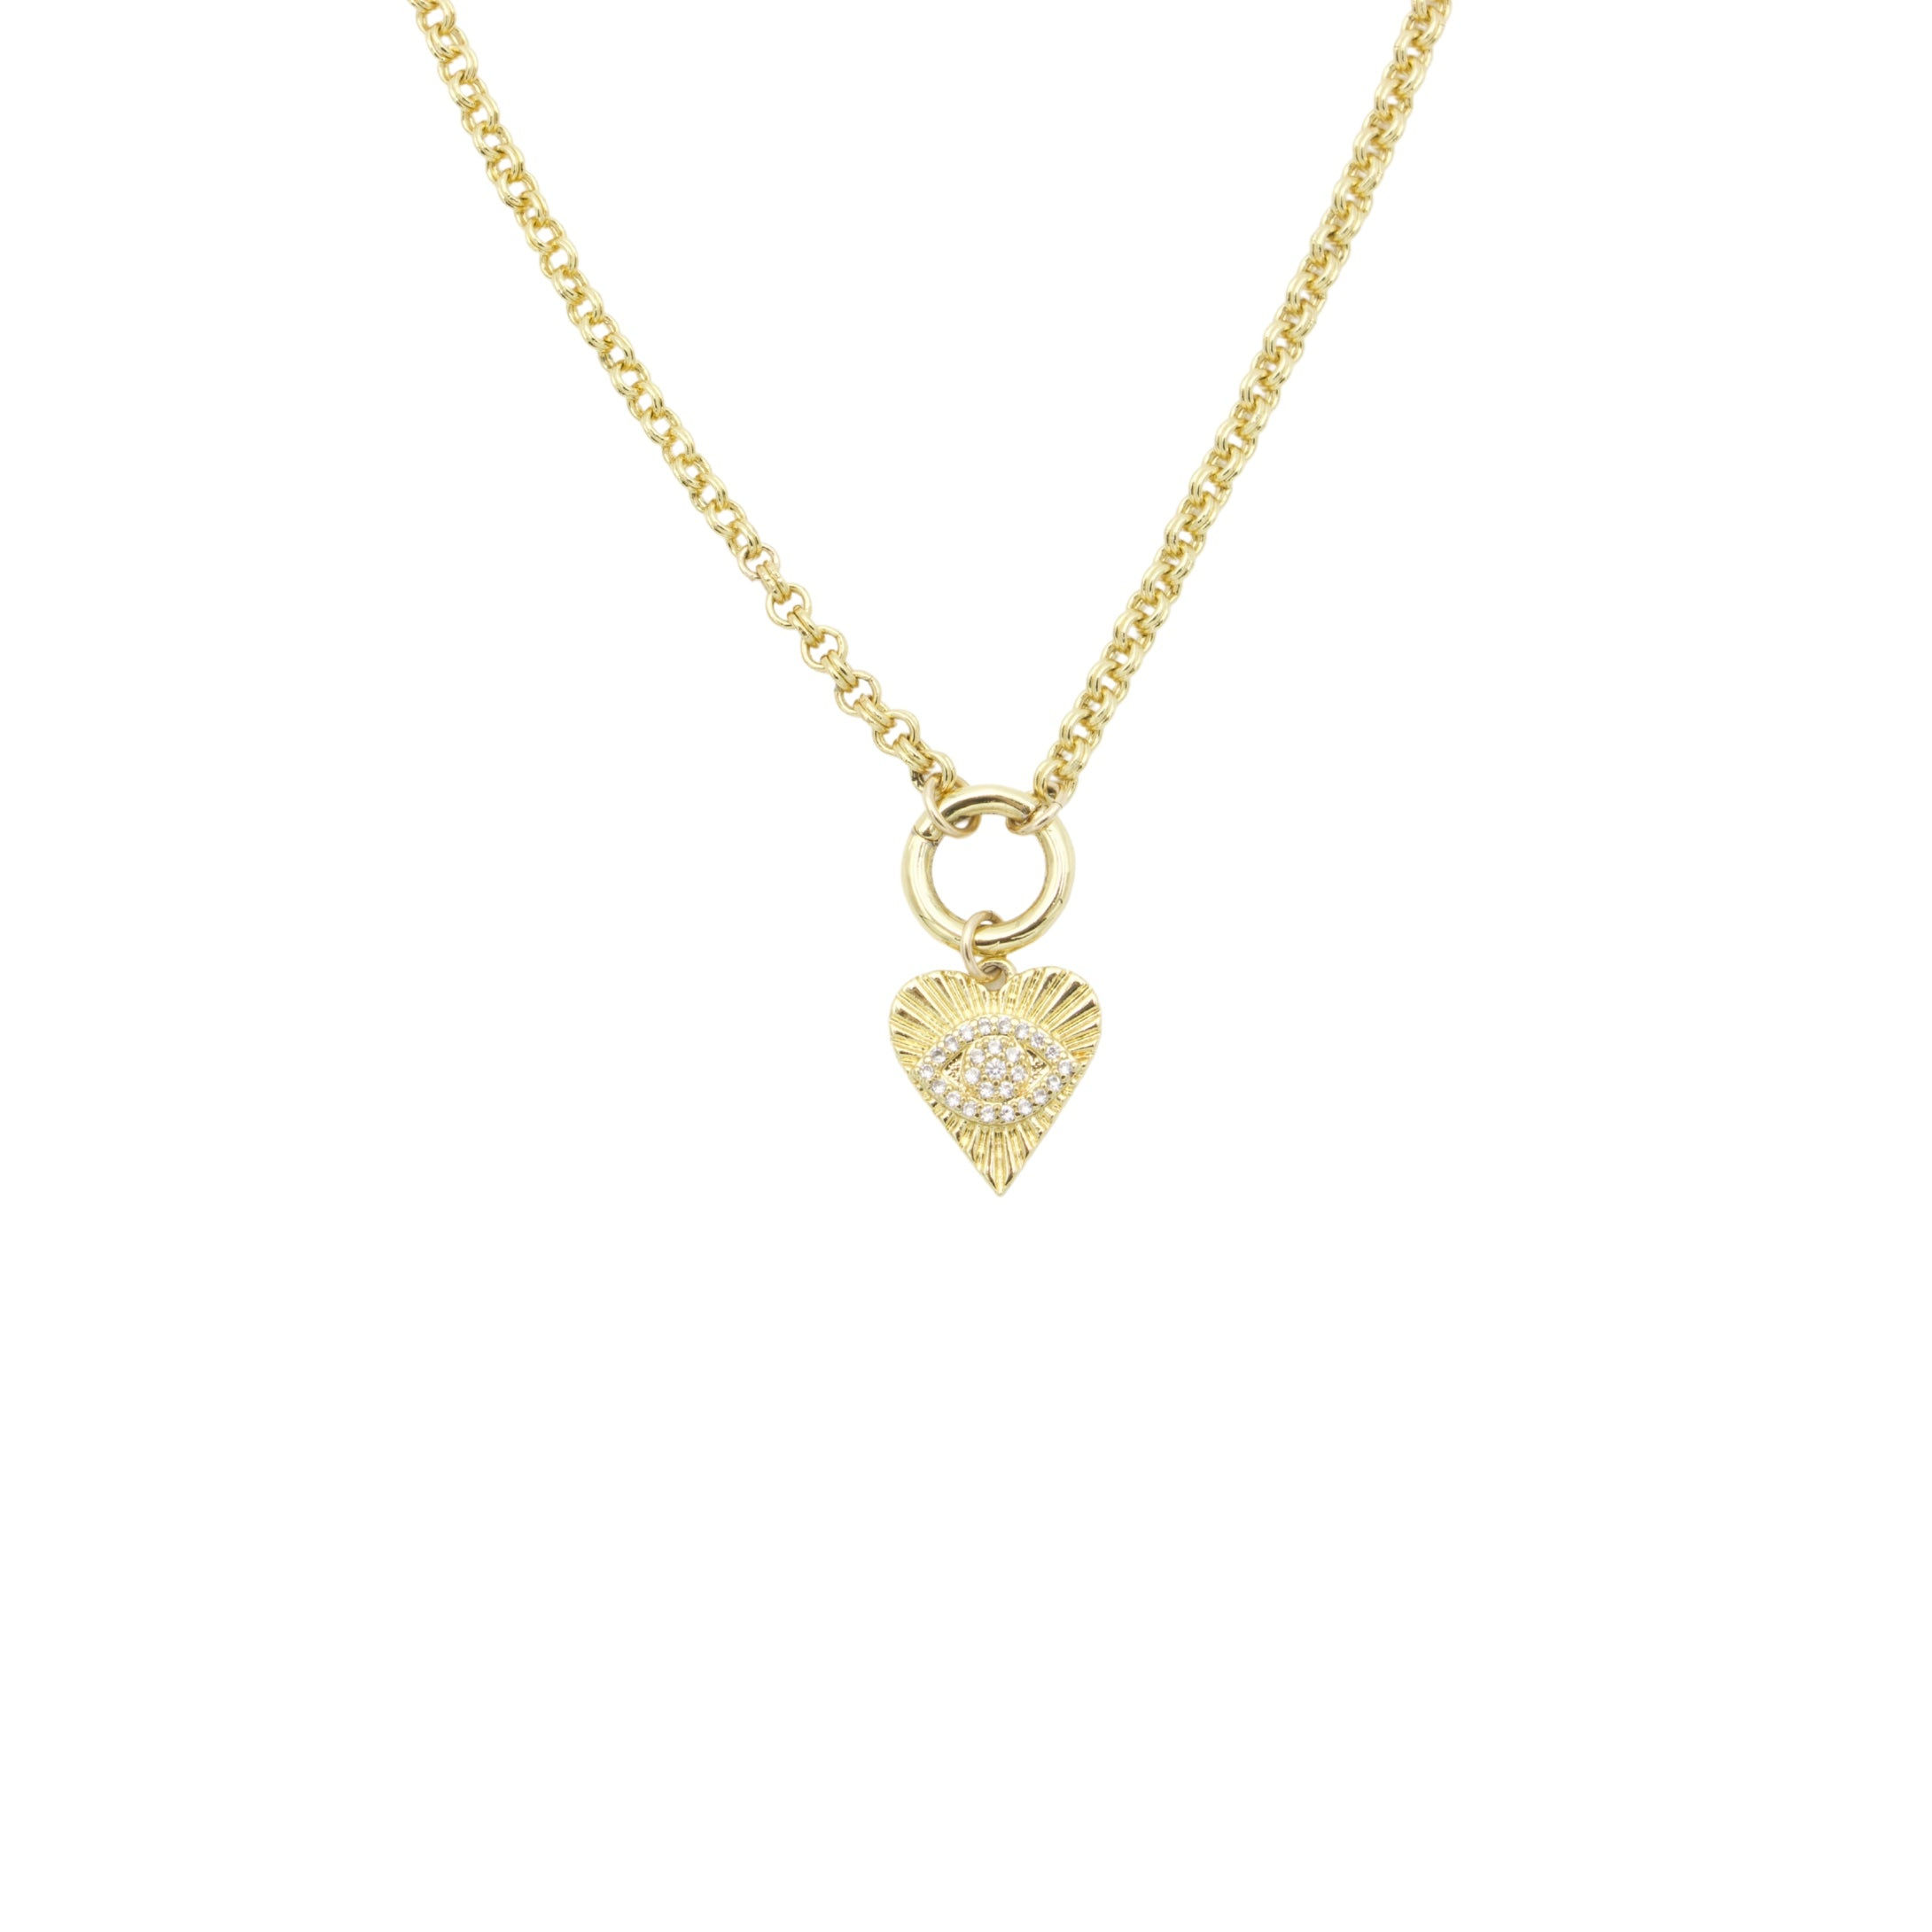 AW Boutique's 20 inch long Evil Eye Vintage Heart Necklace is a limited edition release designed for Mothers Day.